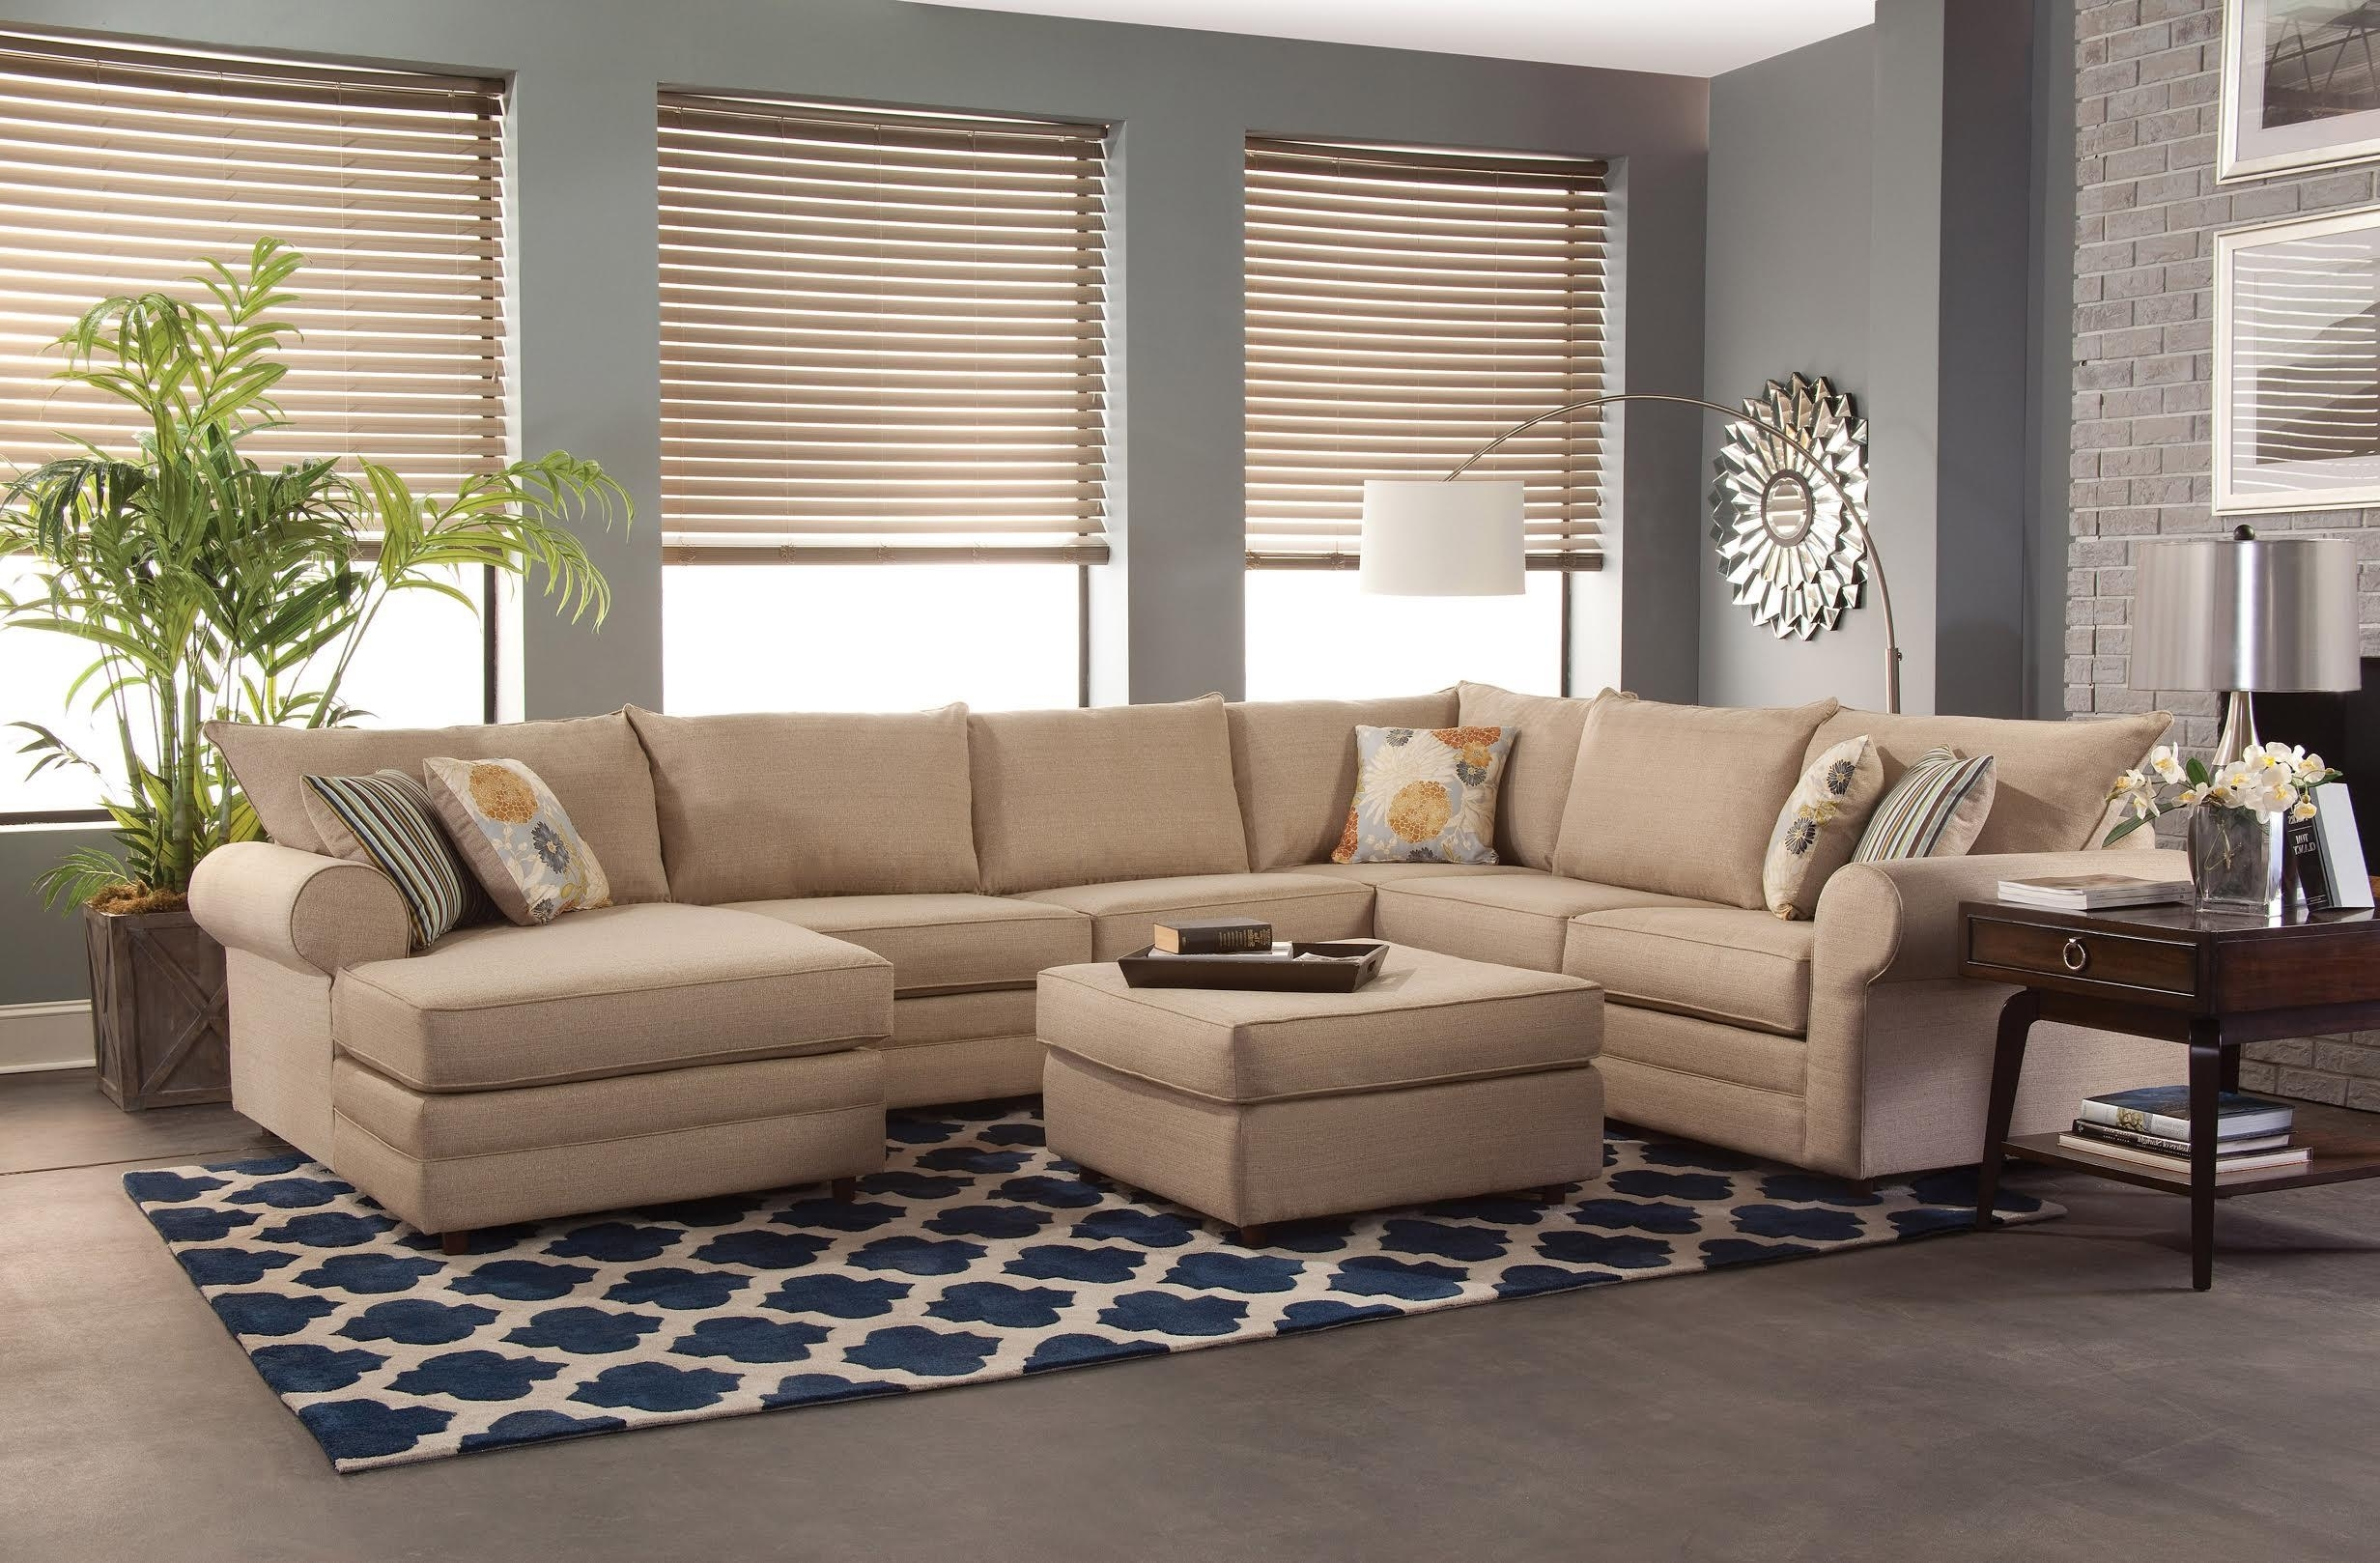 Fashionable Sectional Sofas With Belfort Essentials Monticello Casual Sectional Sofa (View 2 of 20)